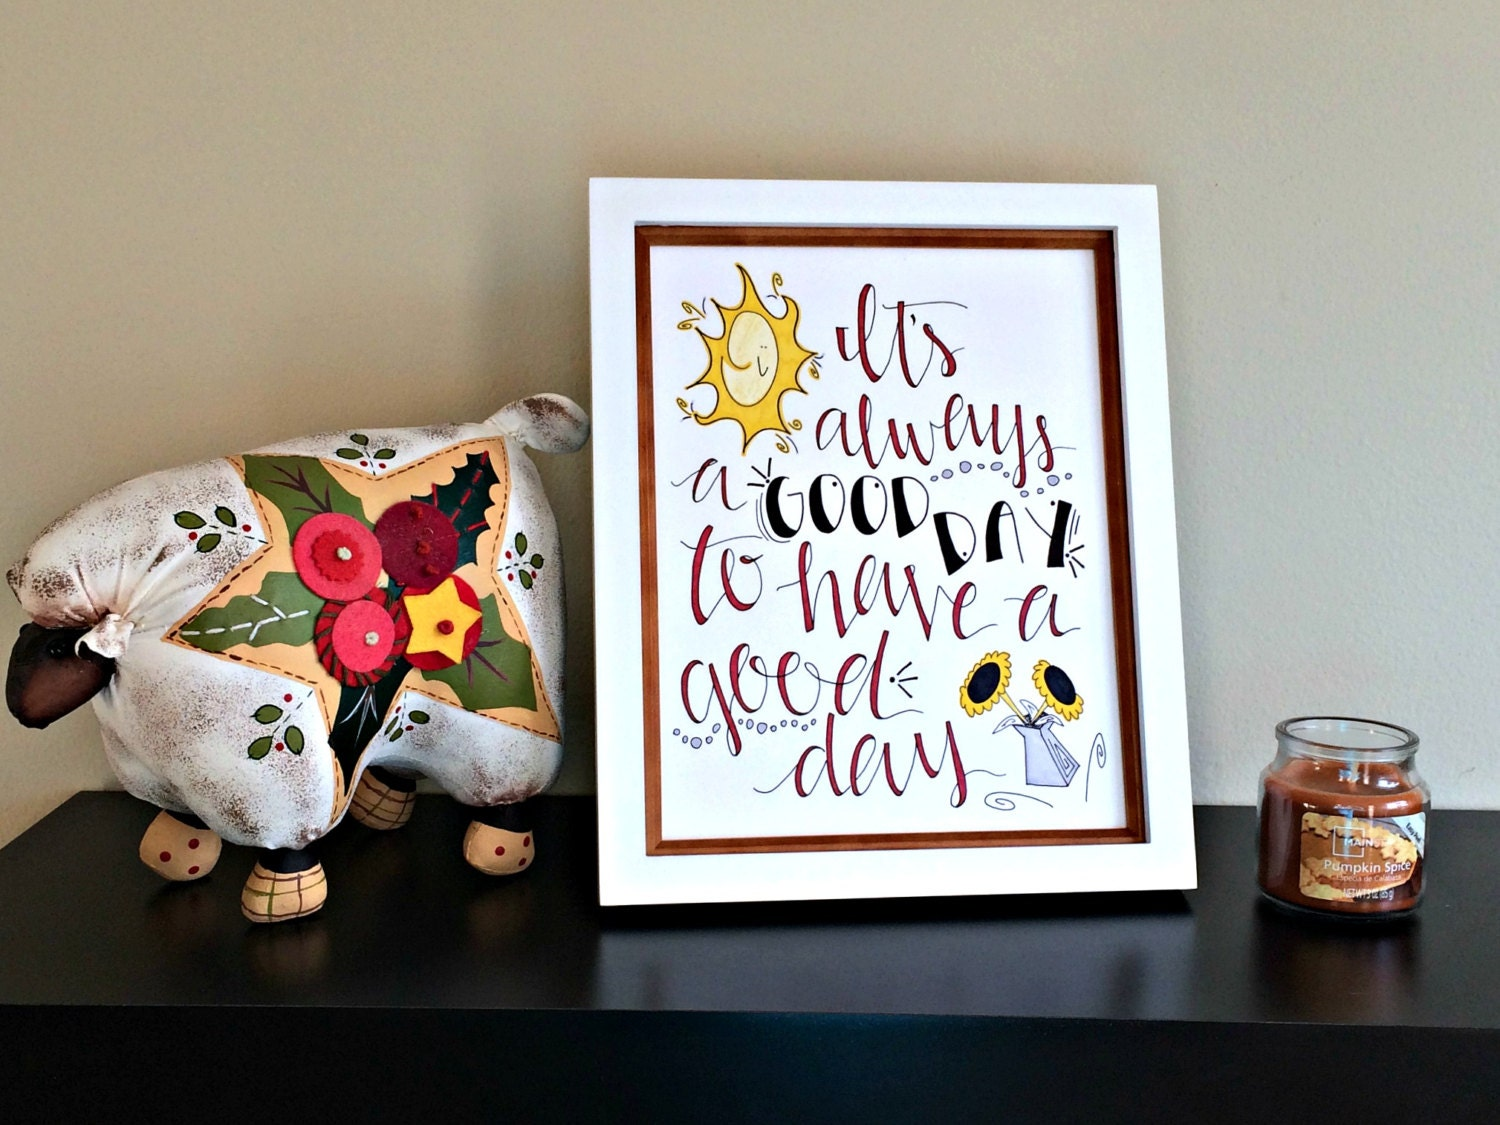 have a good day quote college dorm gift positive wall art. Black Bedroom Furniture Sets. Home Design Ideas